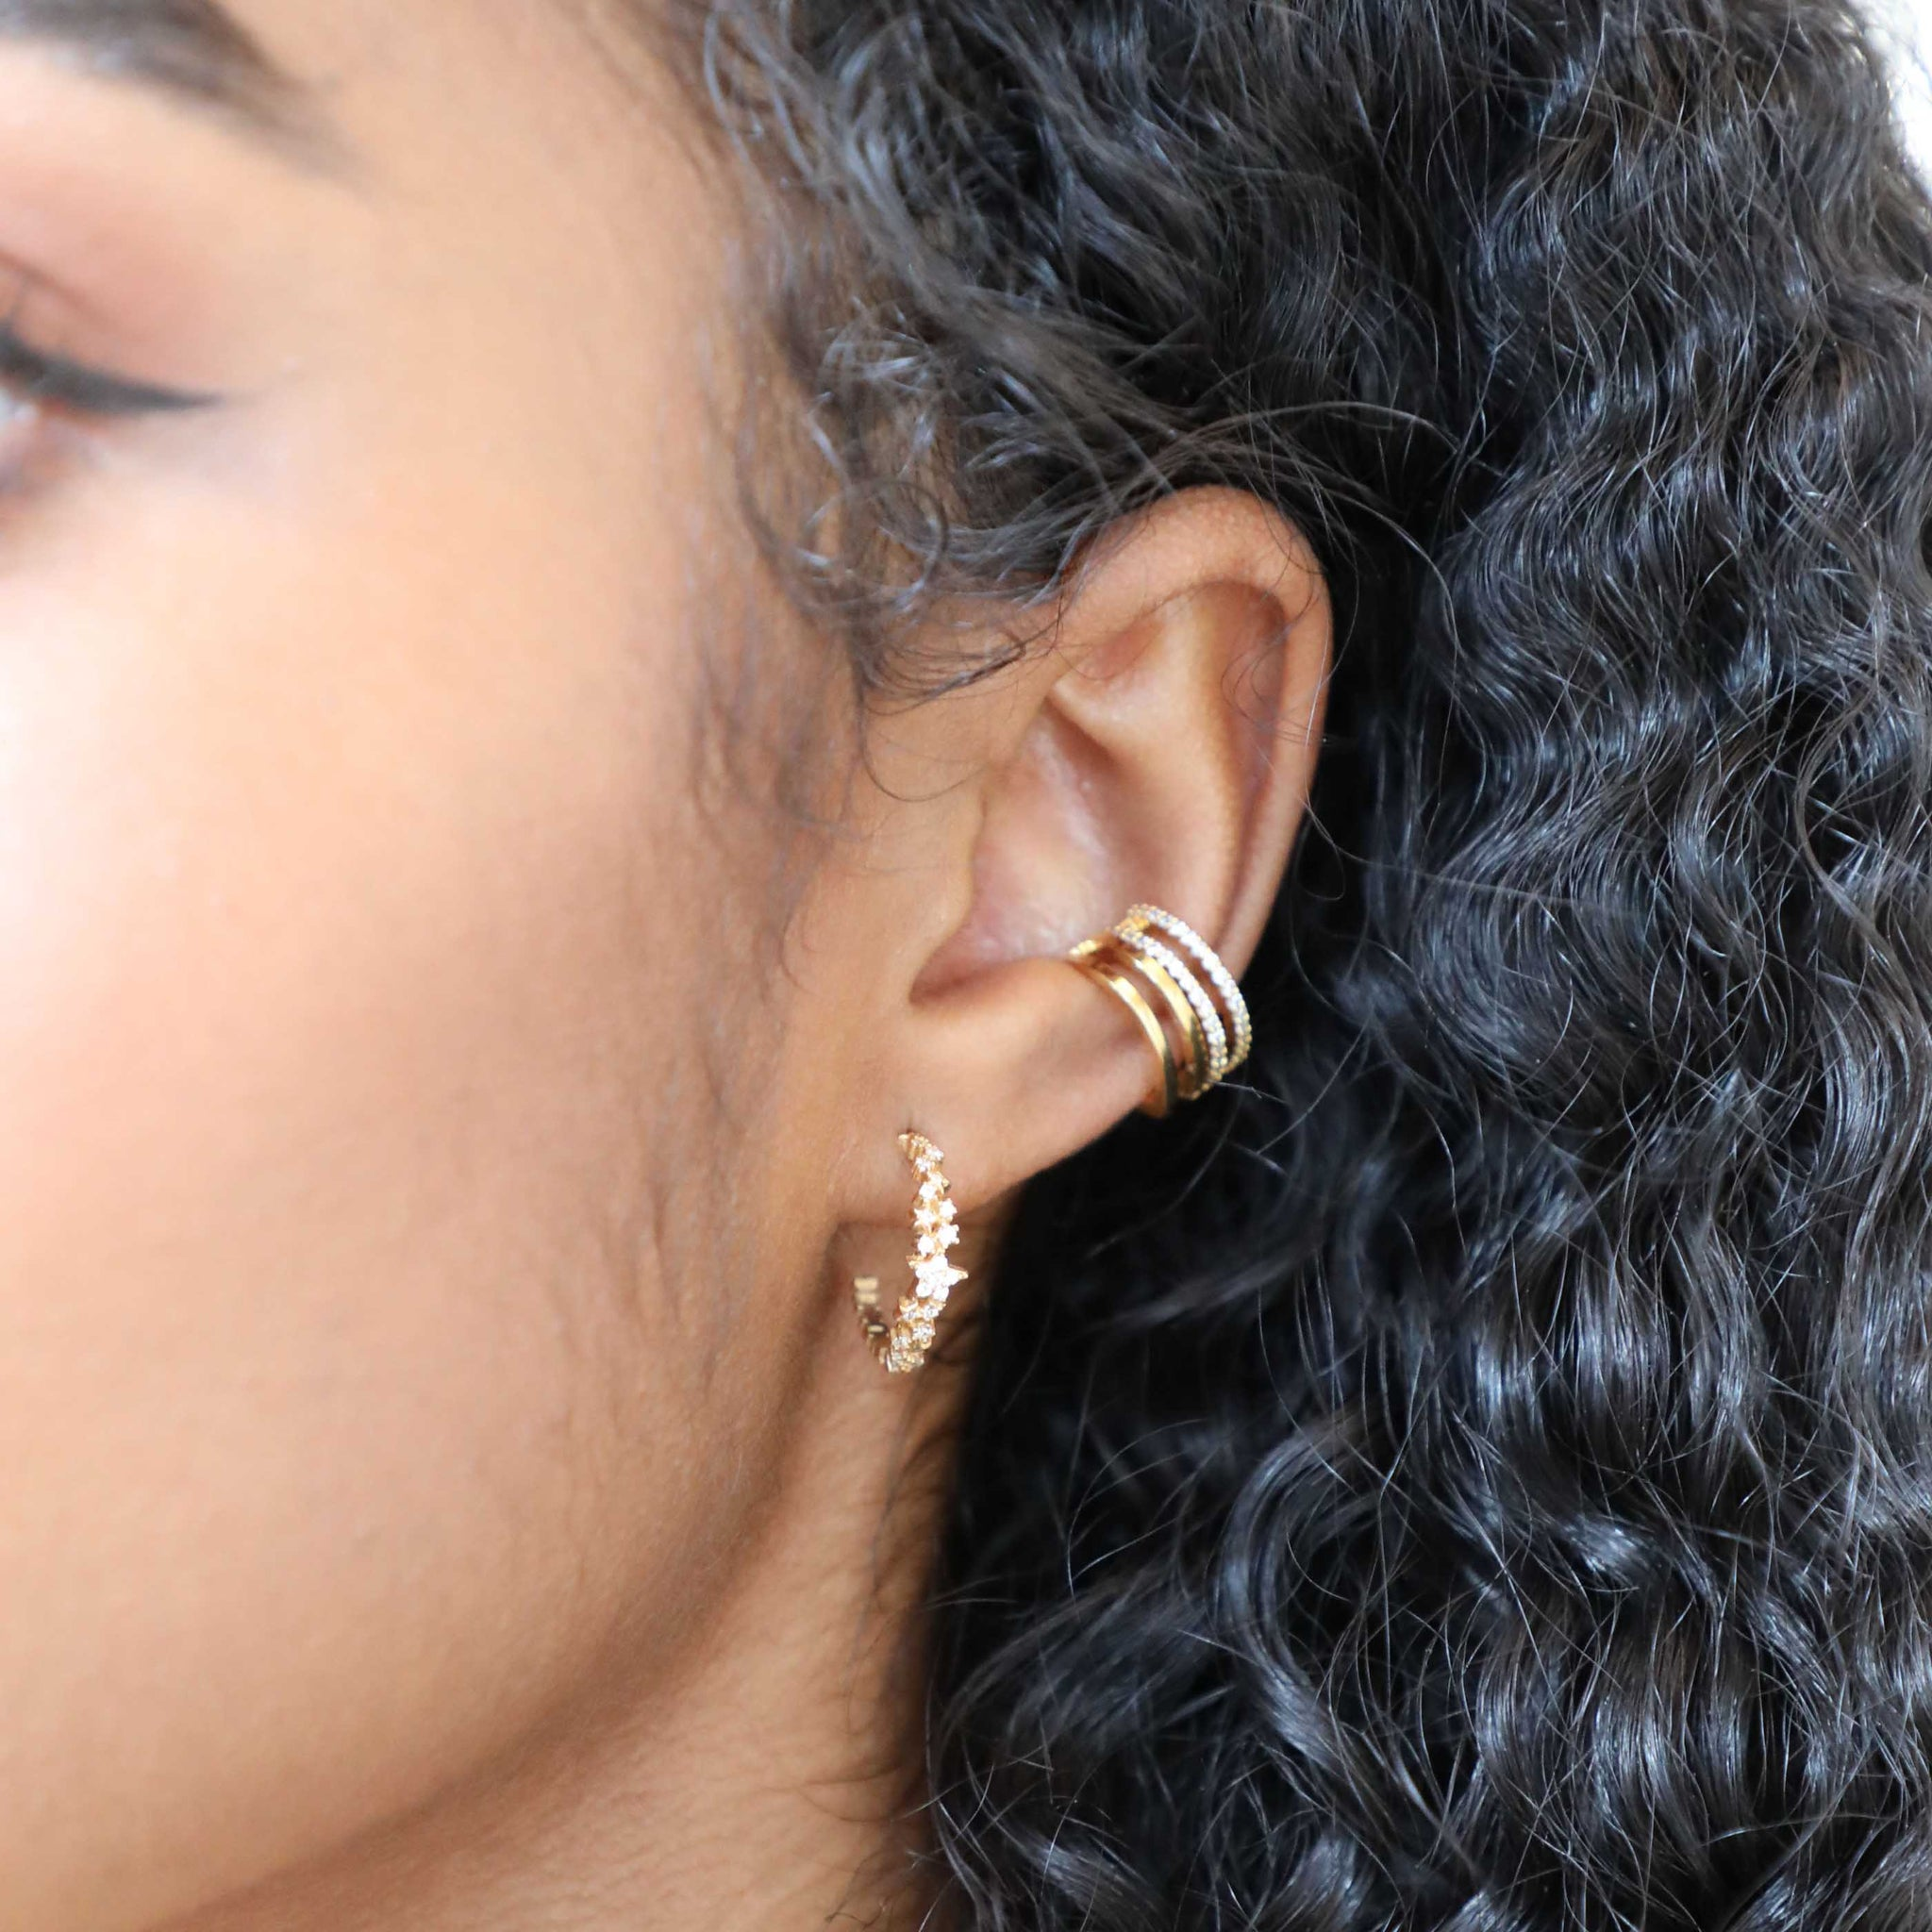 Mystic Star Hoops in Gold worn with ear cuffs